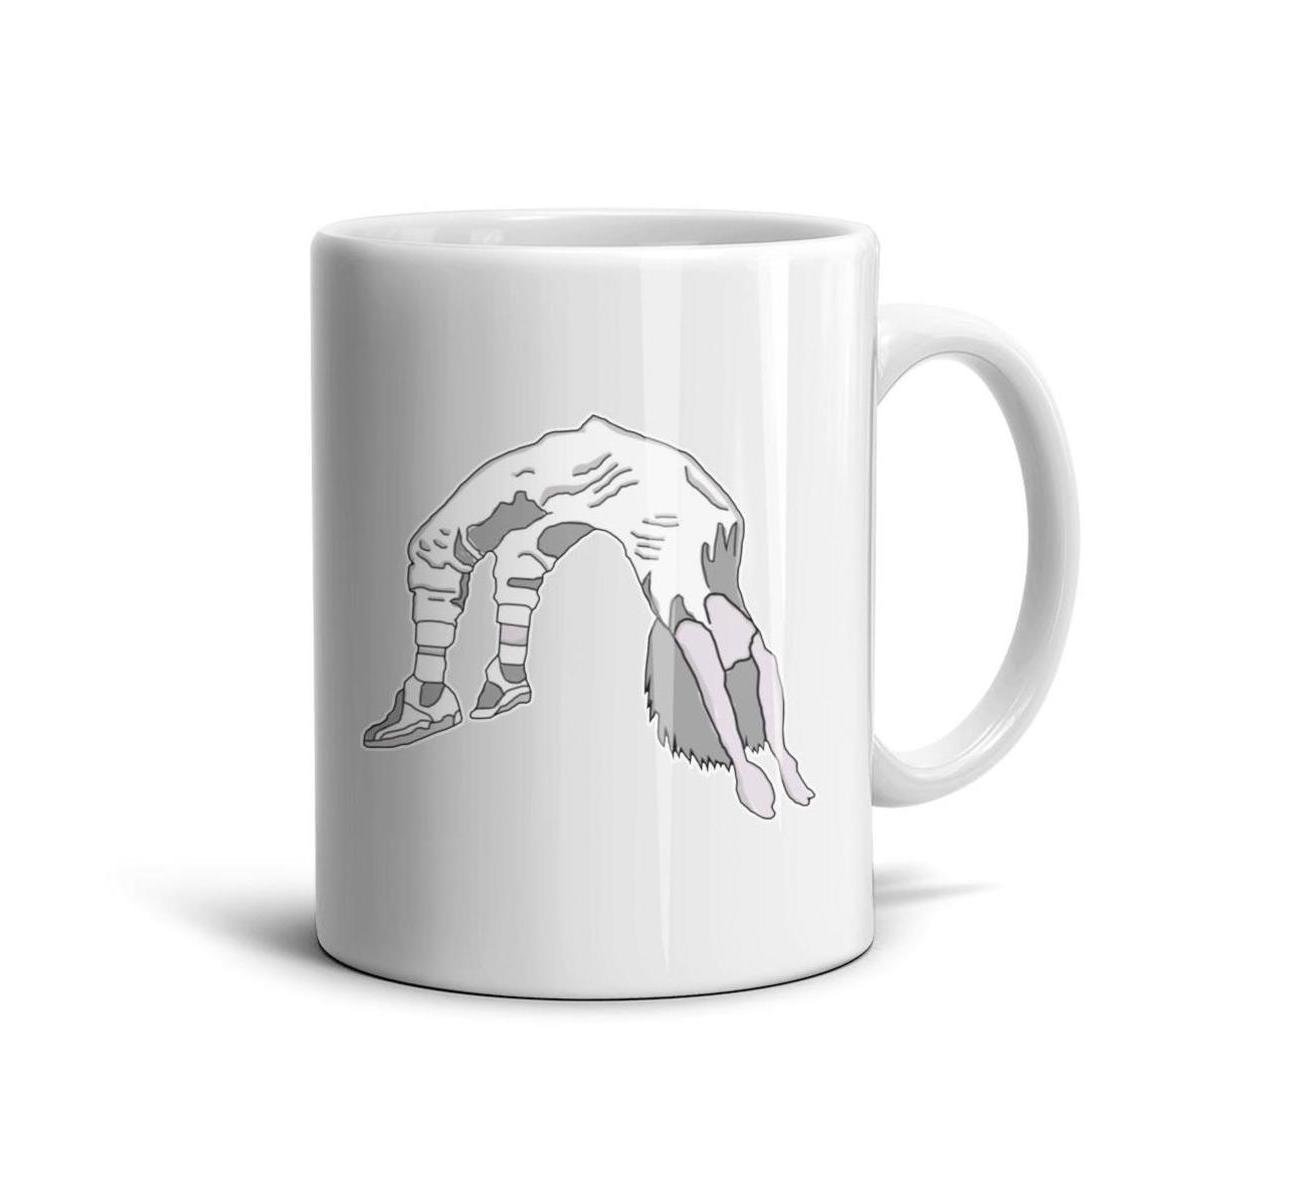 Billie Eilish Bury A Friends TeaMugs Mug 11 oz regalo perfetto